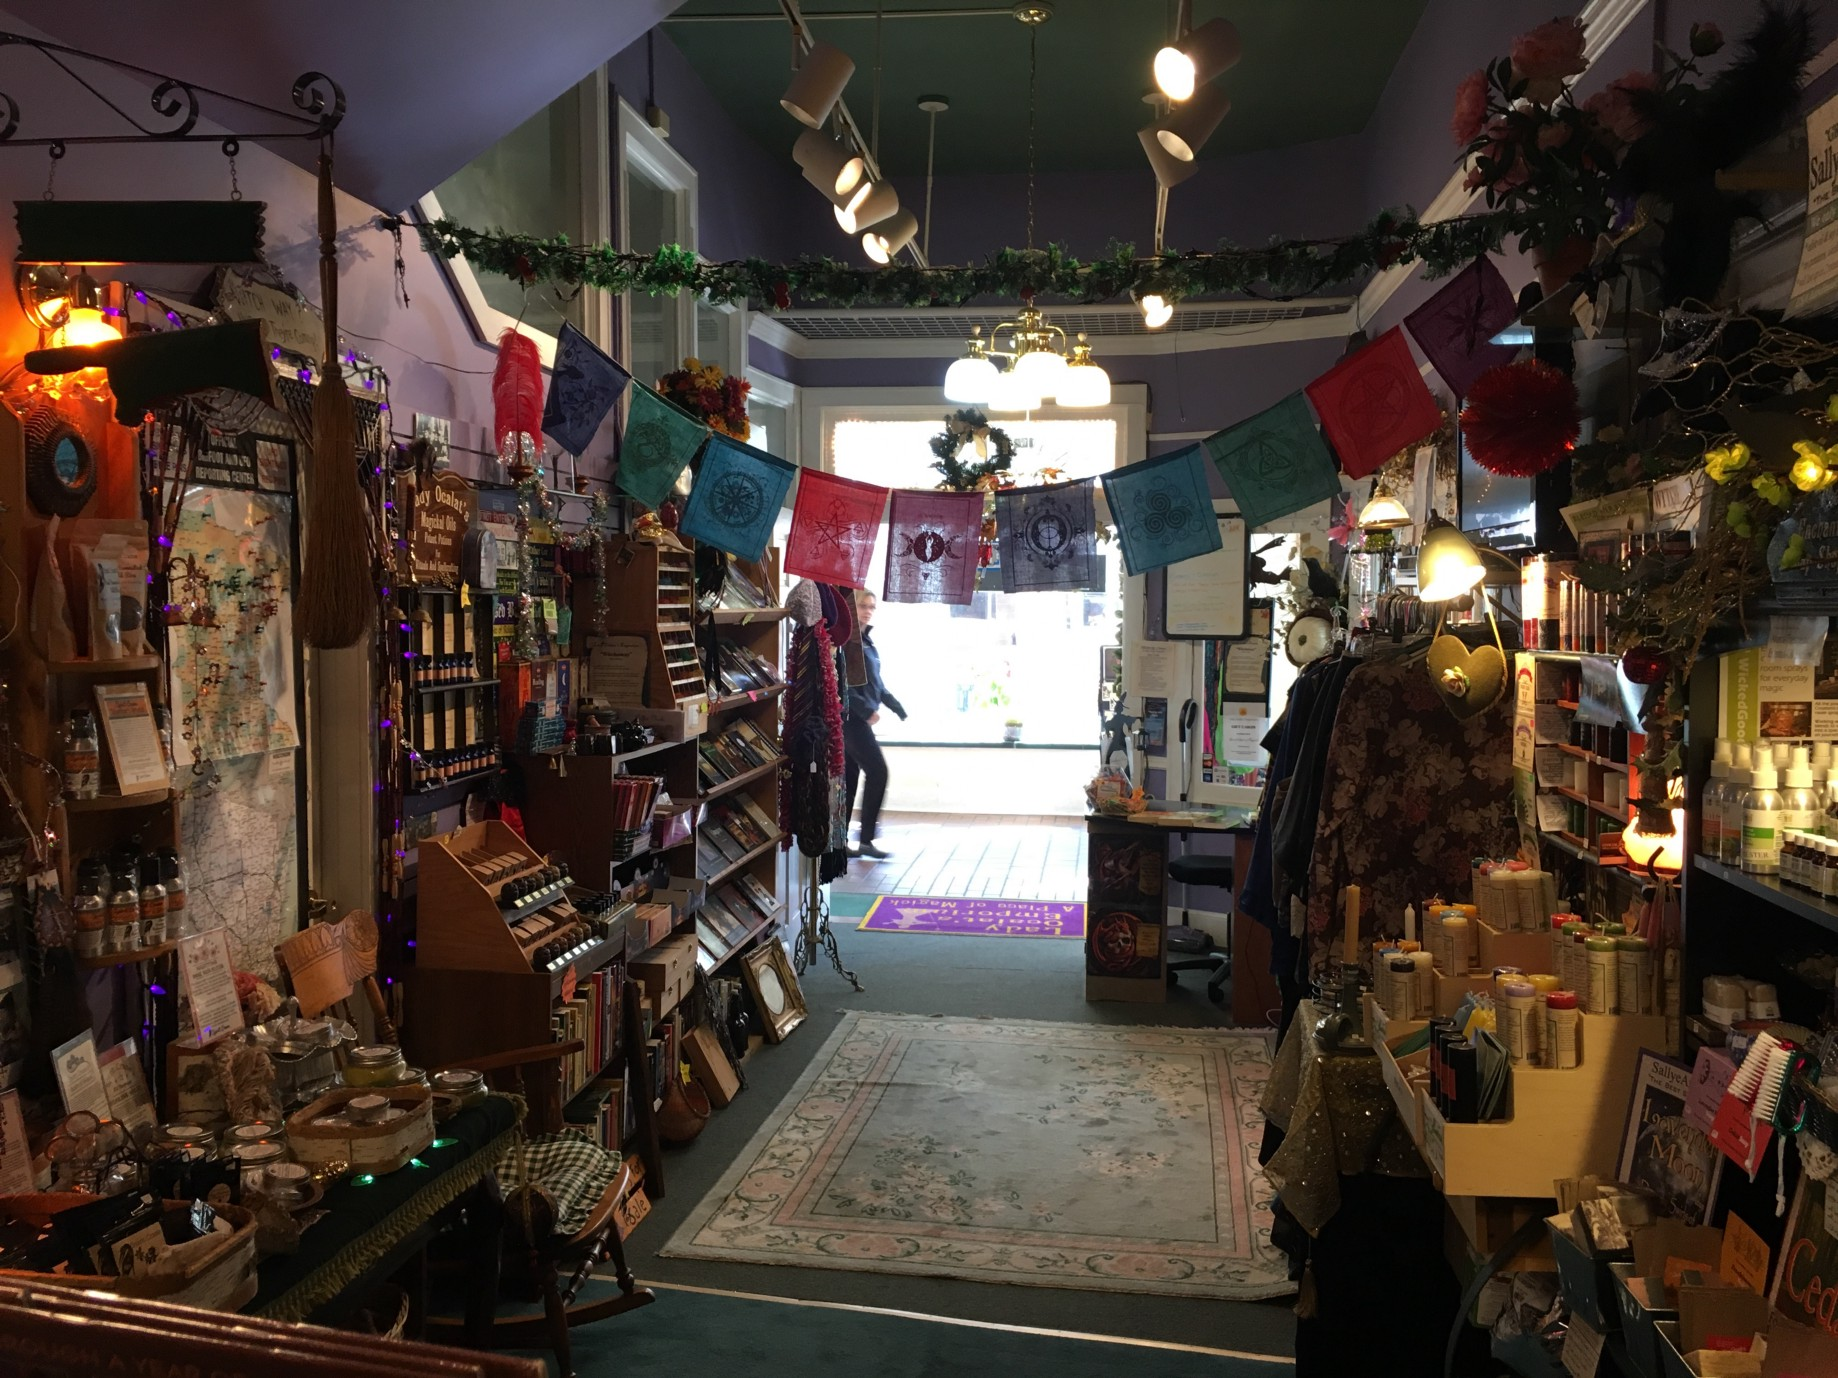 Lady Ocalat's Emporium: 'I've always been a witch' - LakeVoice